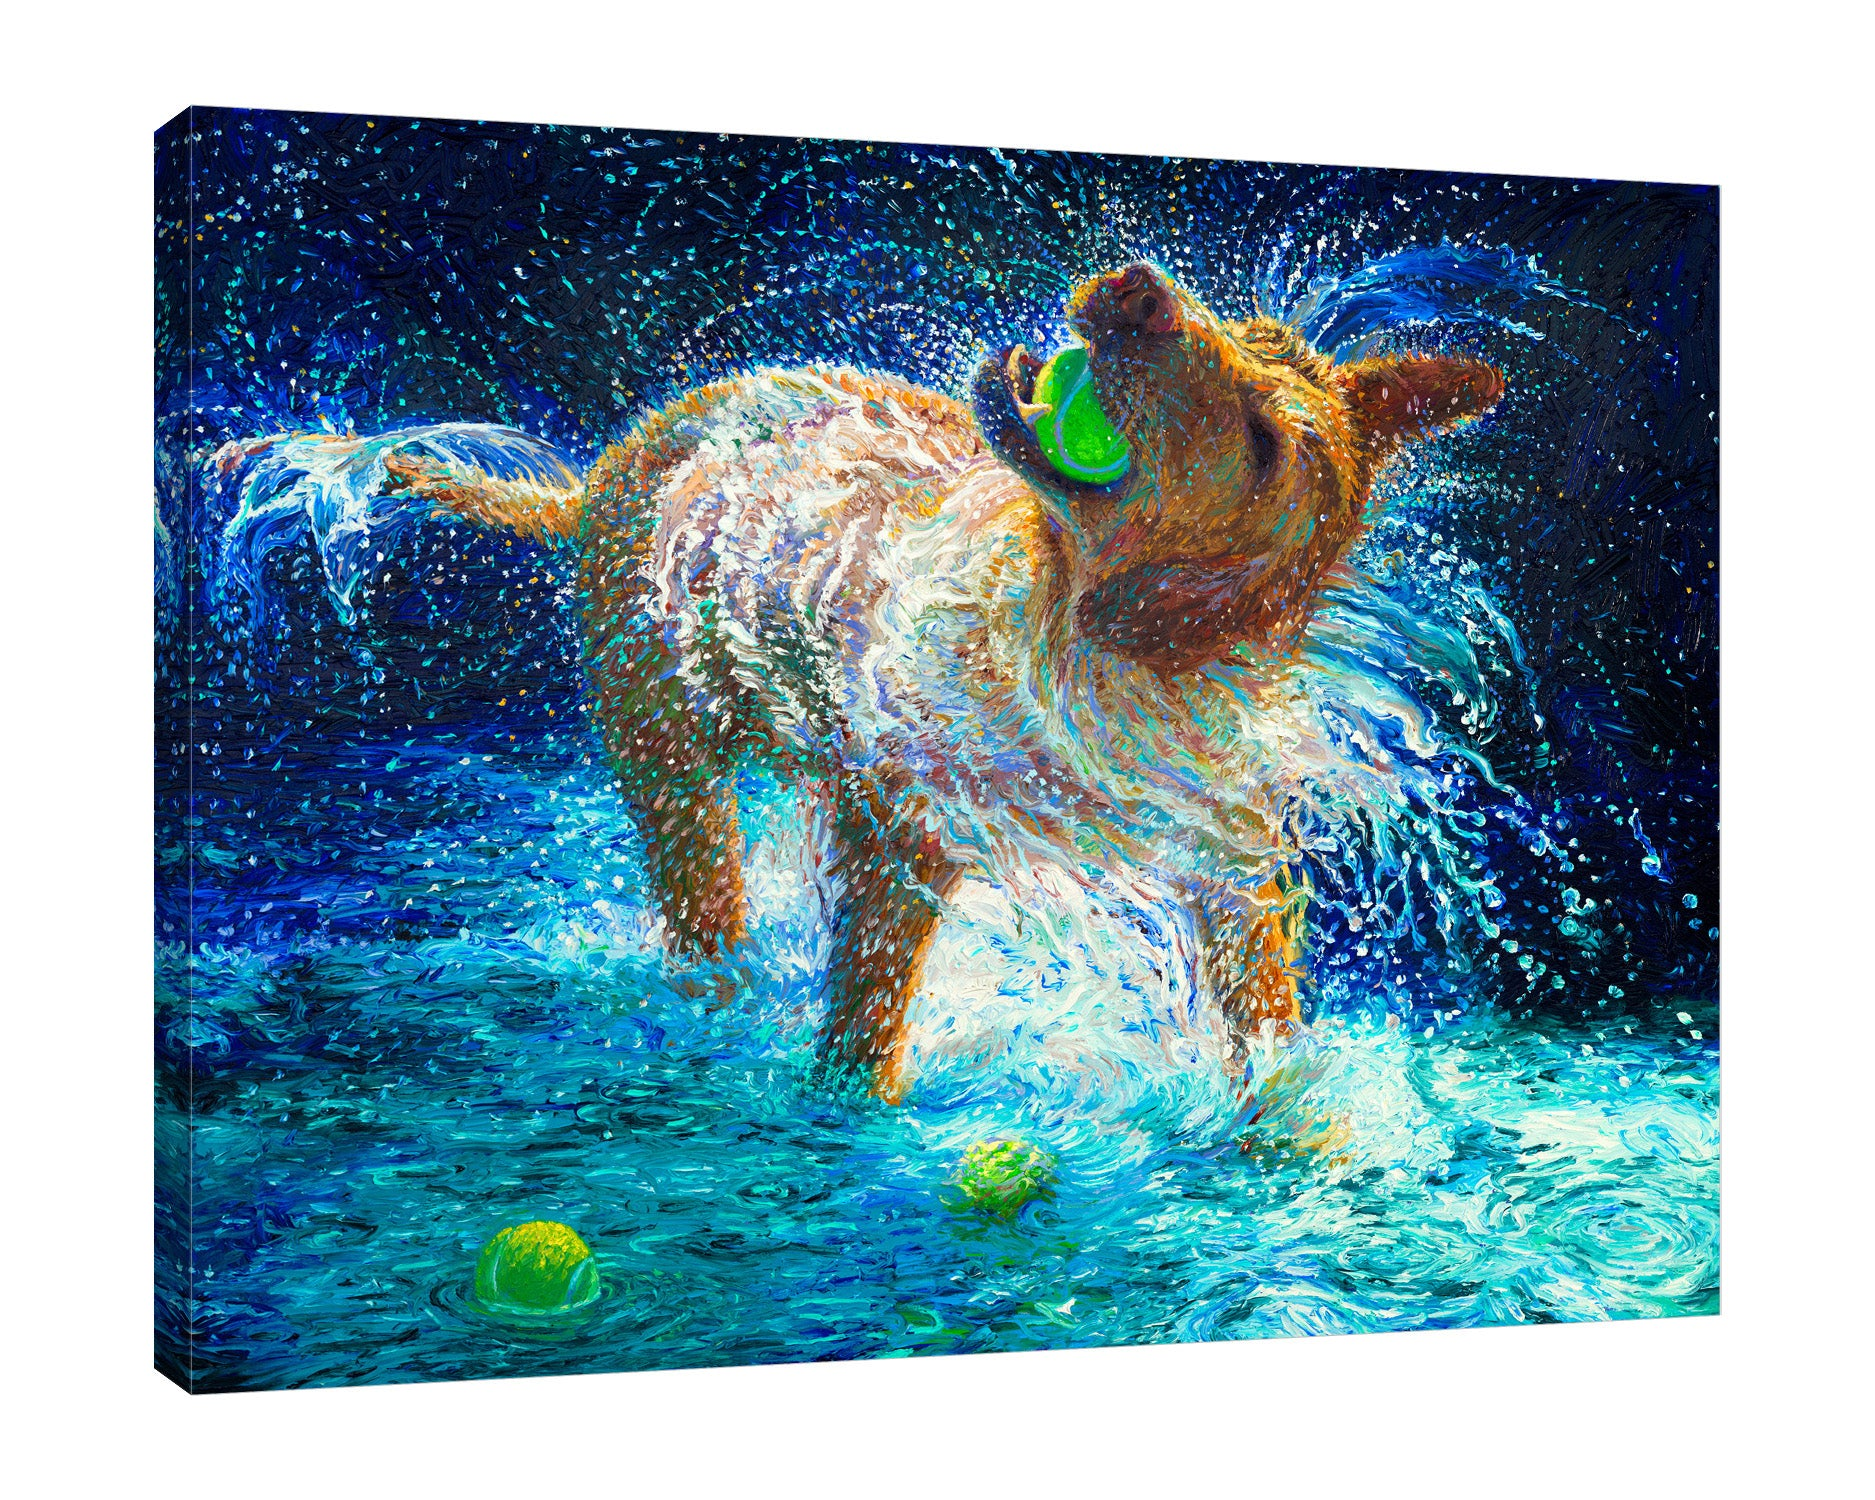 Iris-Scott,Modern & Contemporary,Animals,animals,dogs,splatters,water,playing,balls,